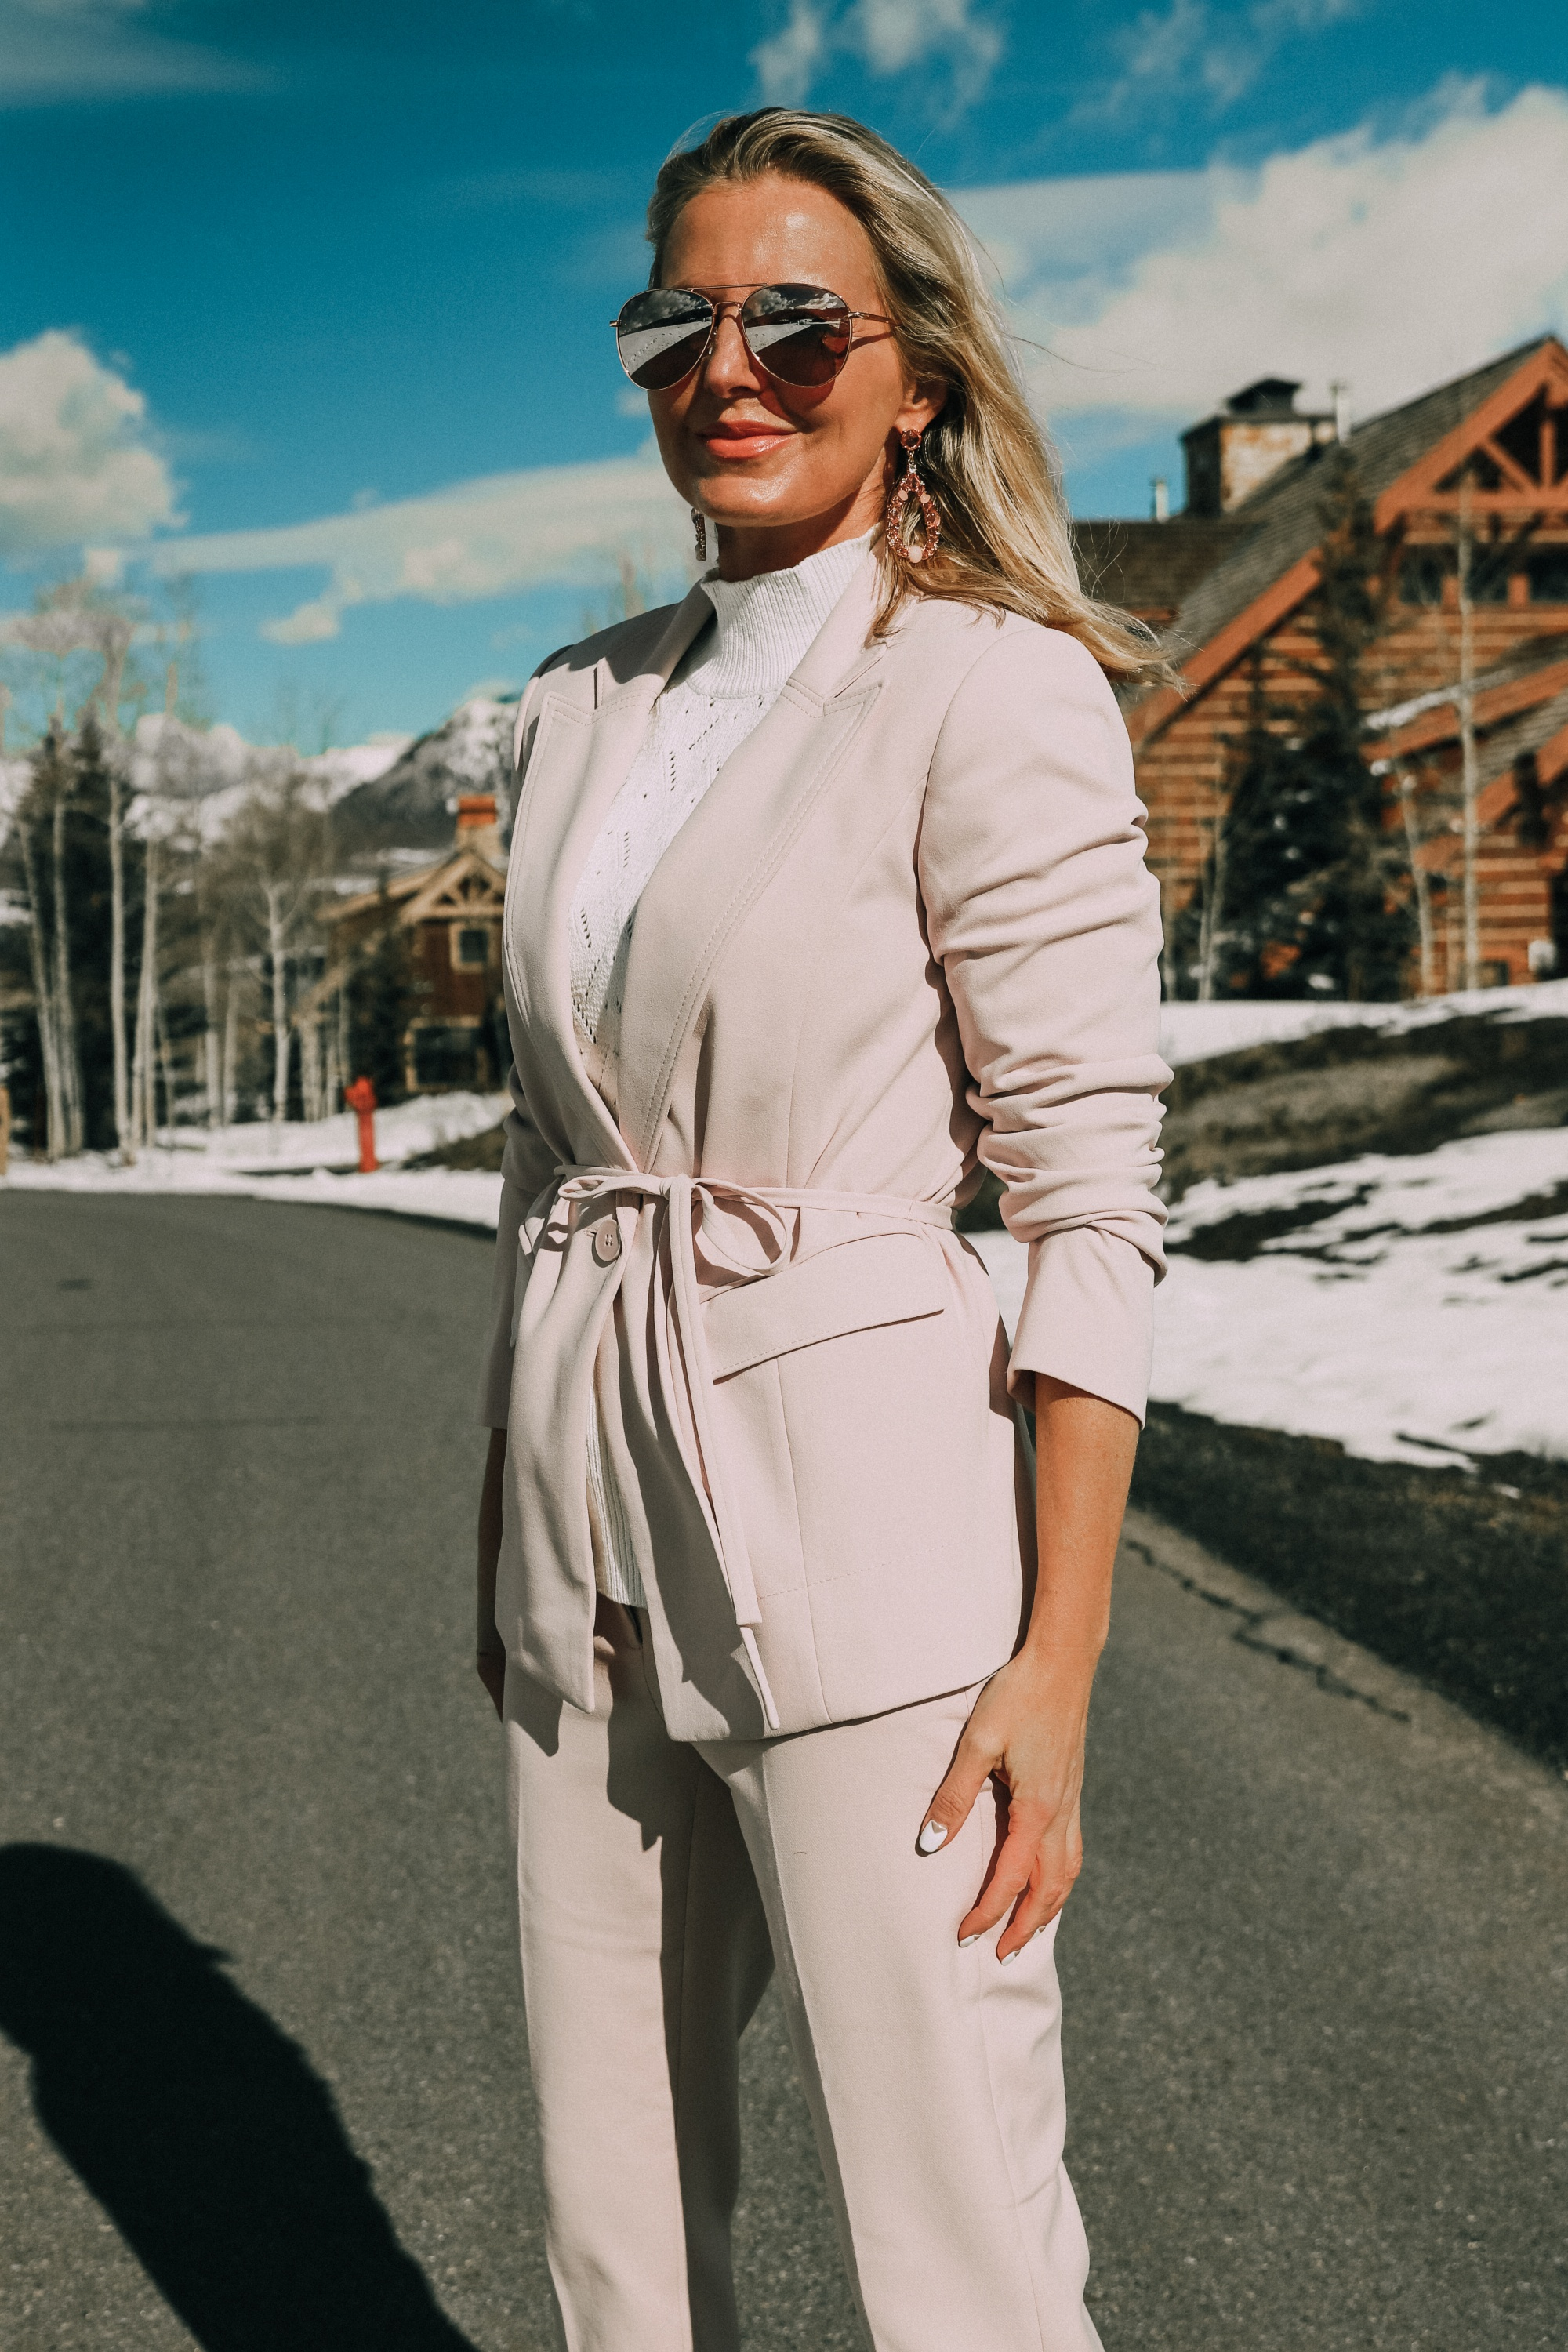 Pink Office Outfit, Fashion blogger Erin Busbee of BusbeeStyle.com wearing a pink power suit from White House Black Market, including a pink belted blazer, pink soft stretch pants, white puff sleeve sweater dress, pink pumps, pink earrings, and aviator sunglasses in Telluride, Colorado